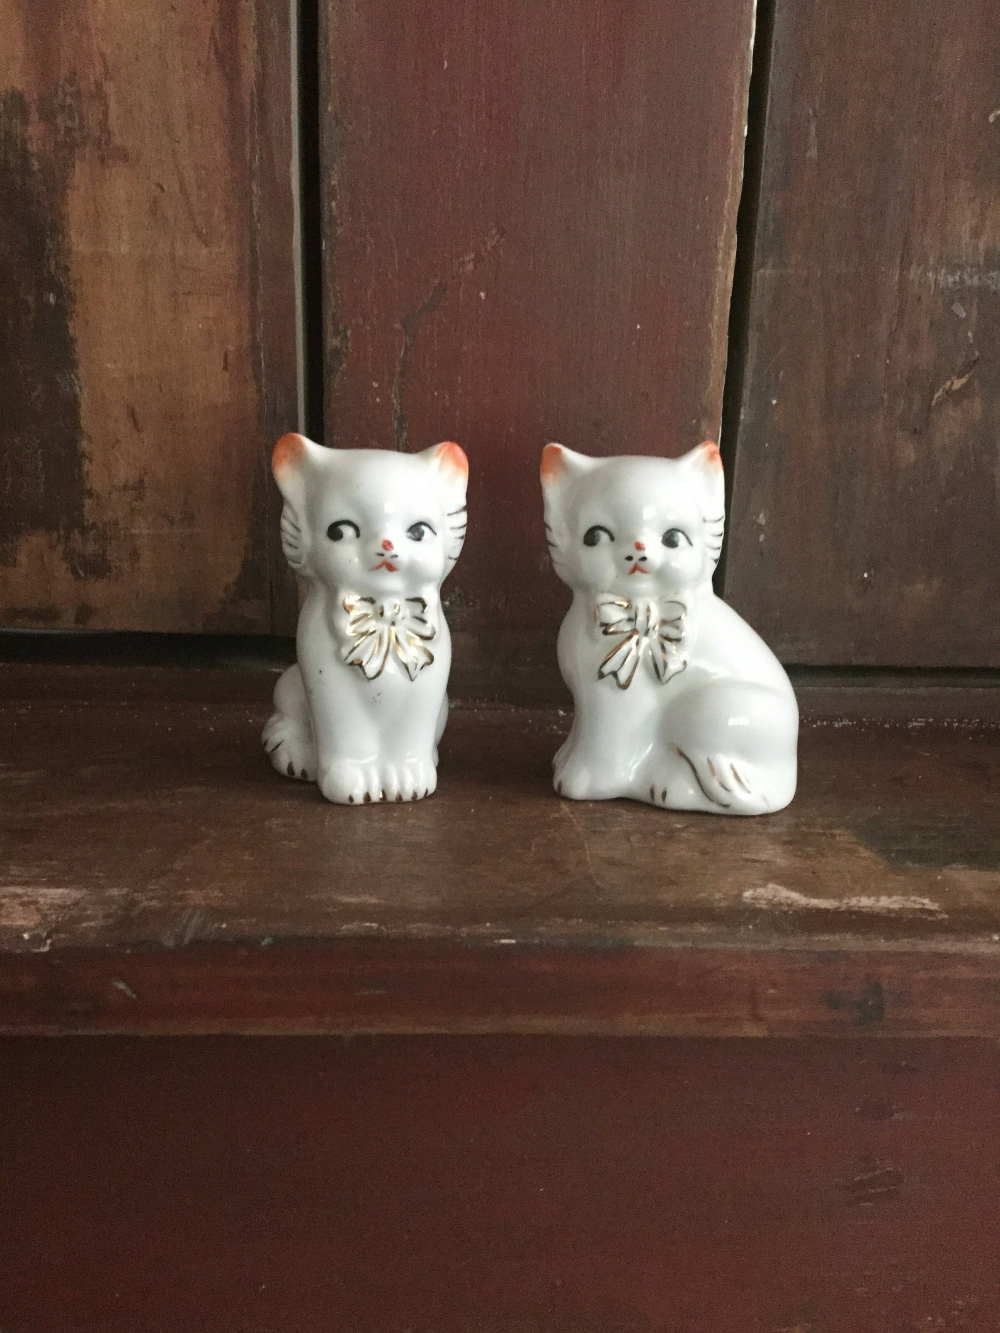 Vintage Collectible White Kitten Salt and Pepper Shakers #whitekittens